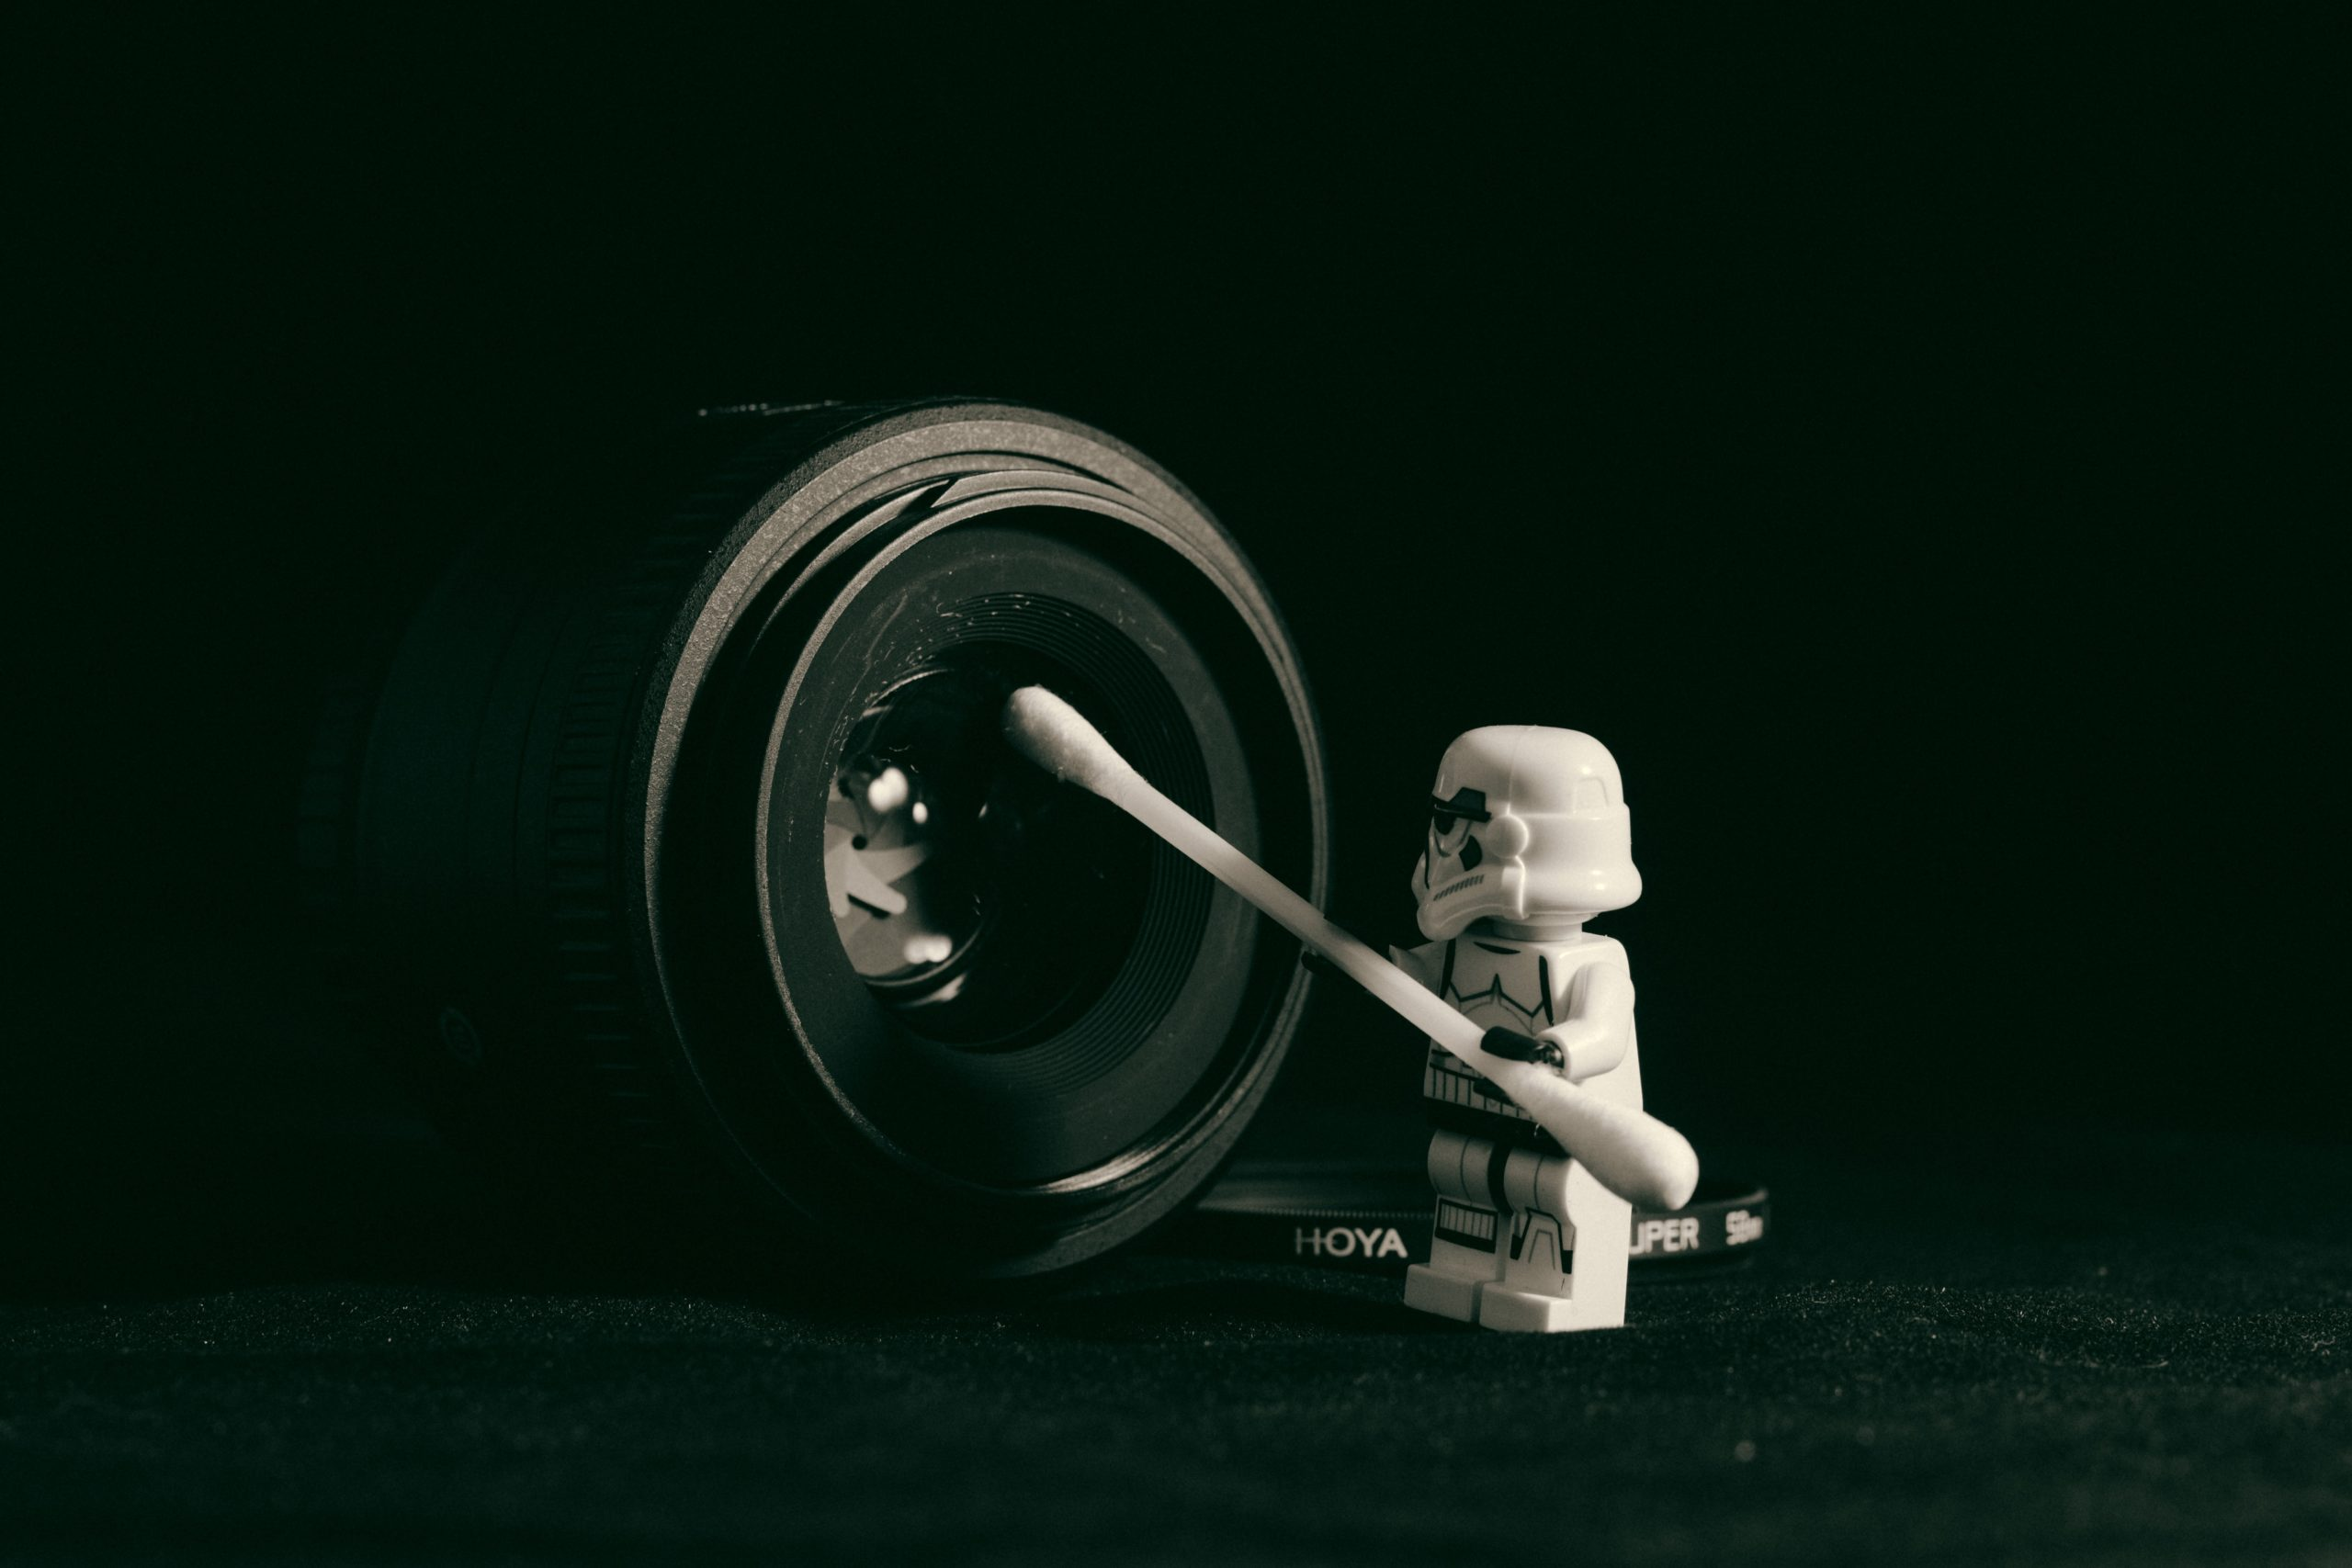 Lego Drone cleaning a camera lens